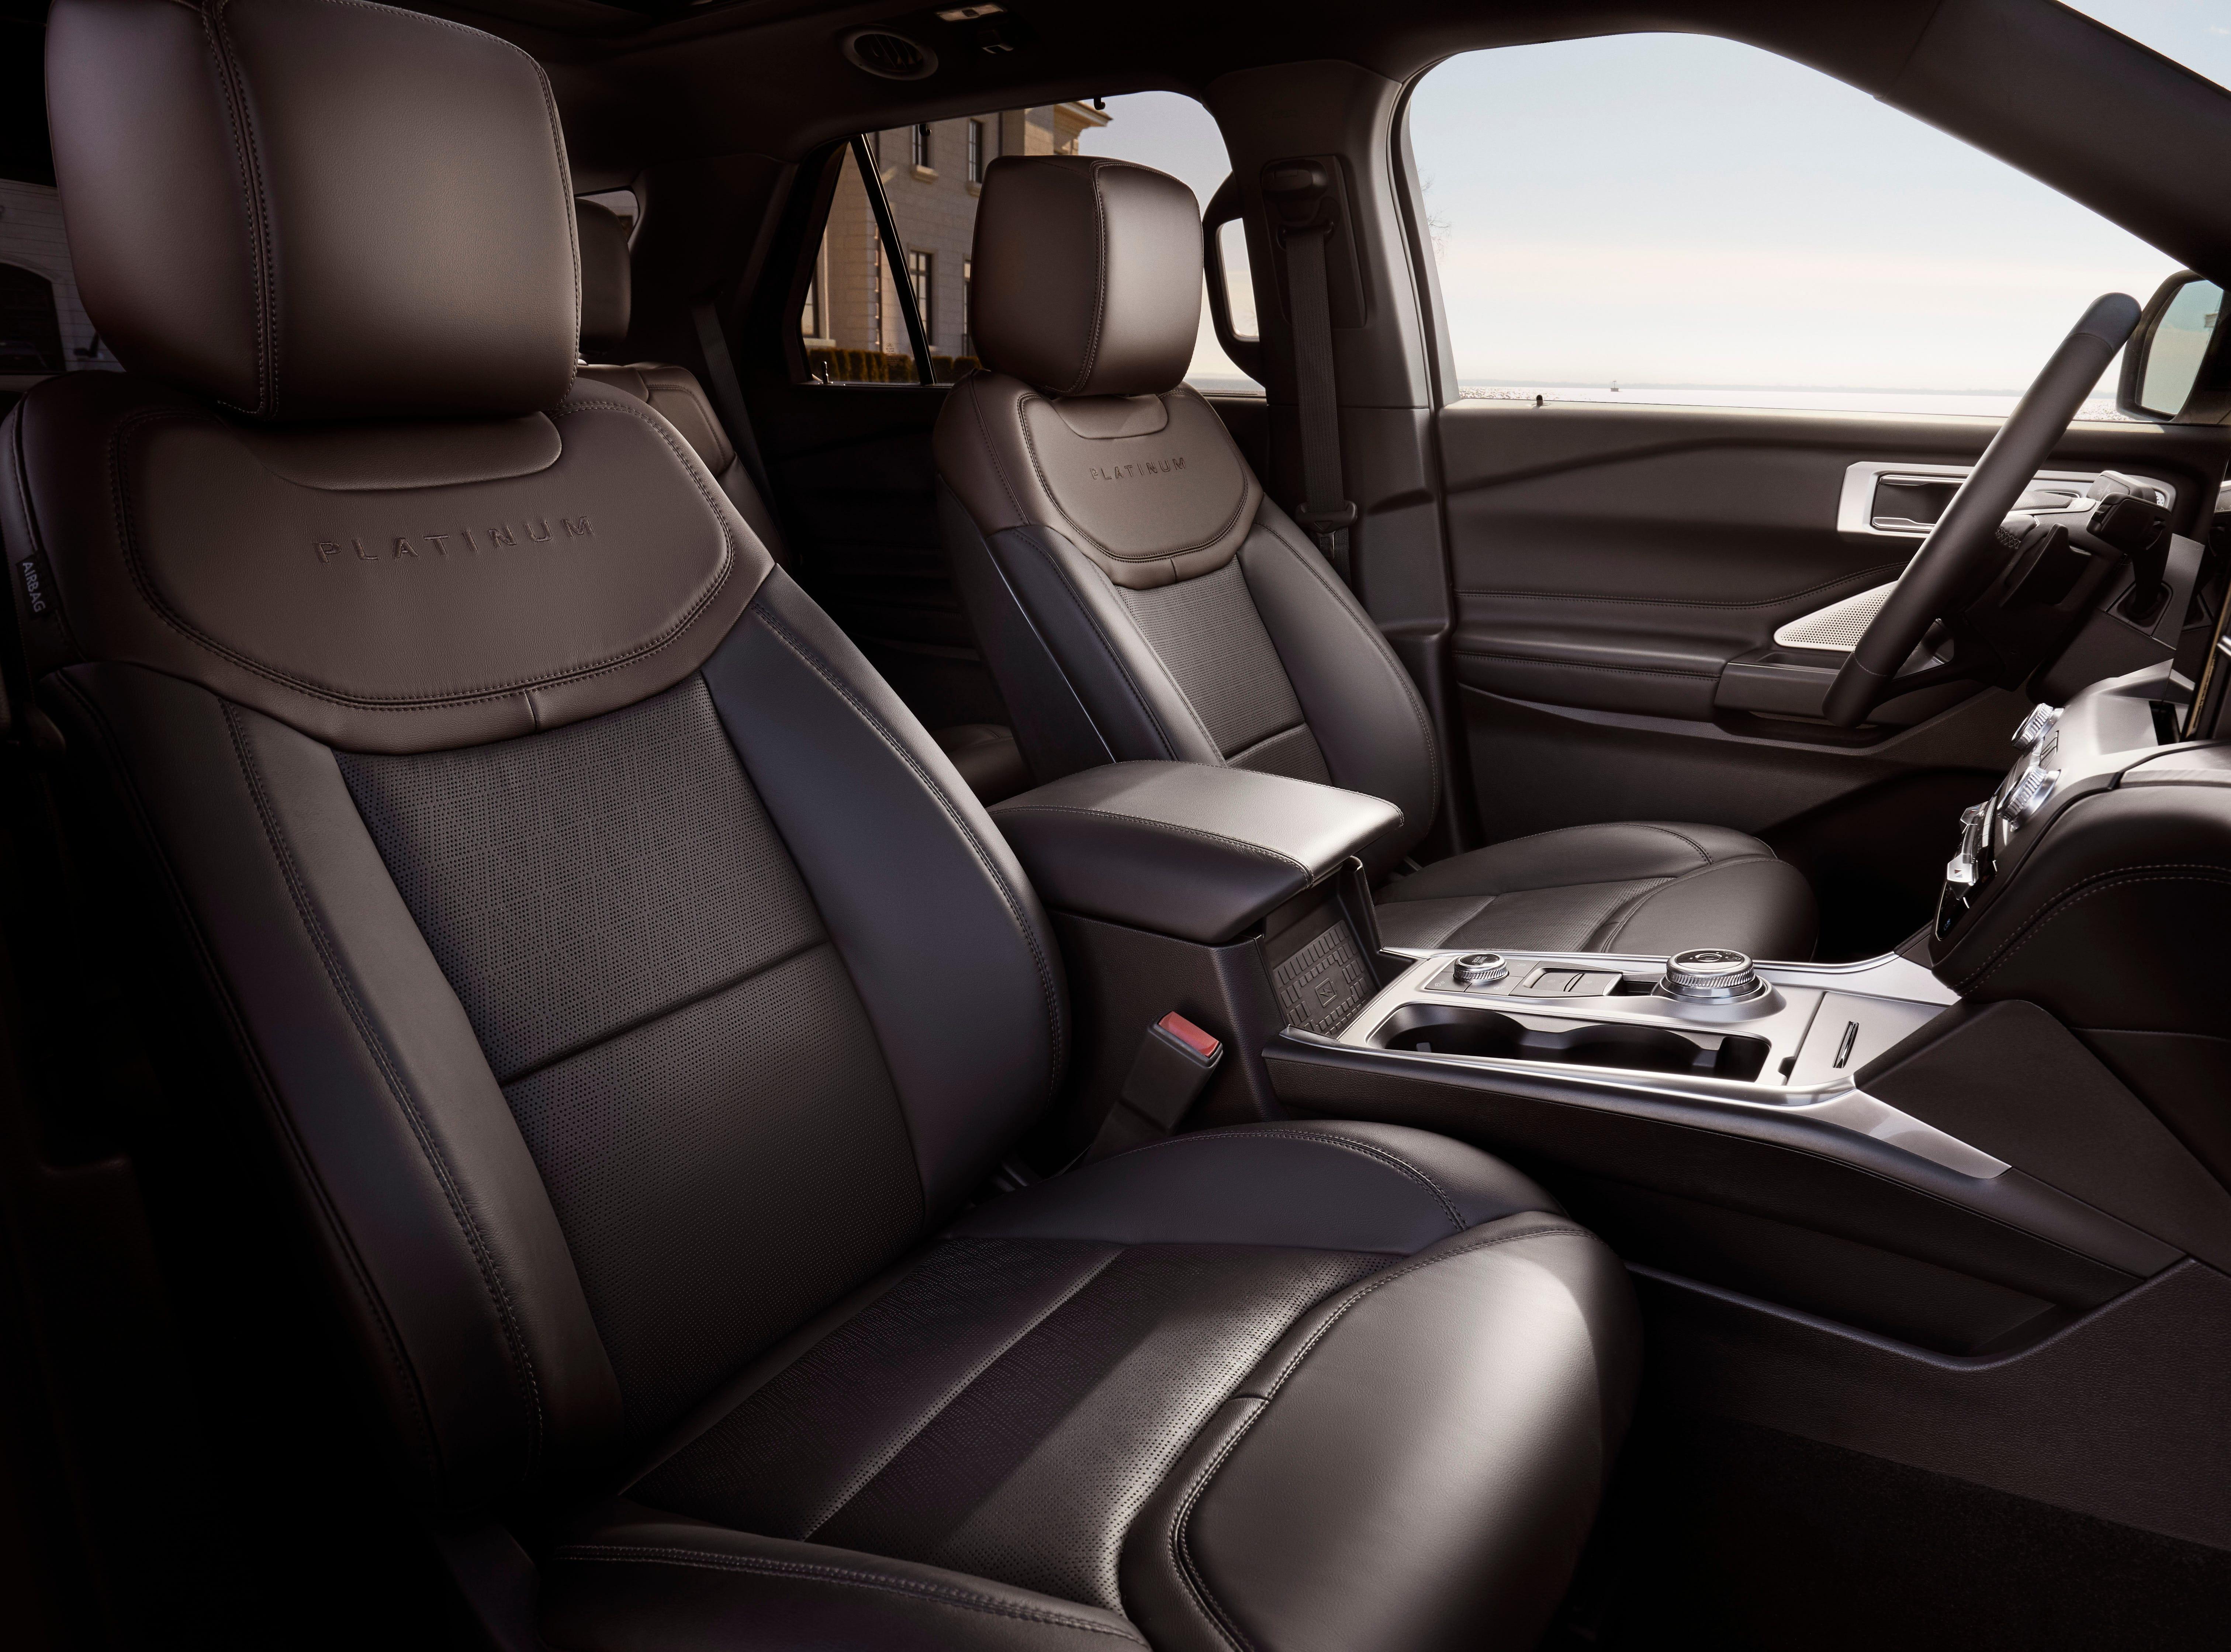 The interior of the 2020 Ford Explorer Platinum model is shown.